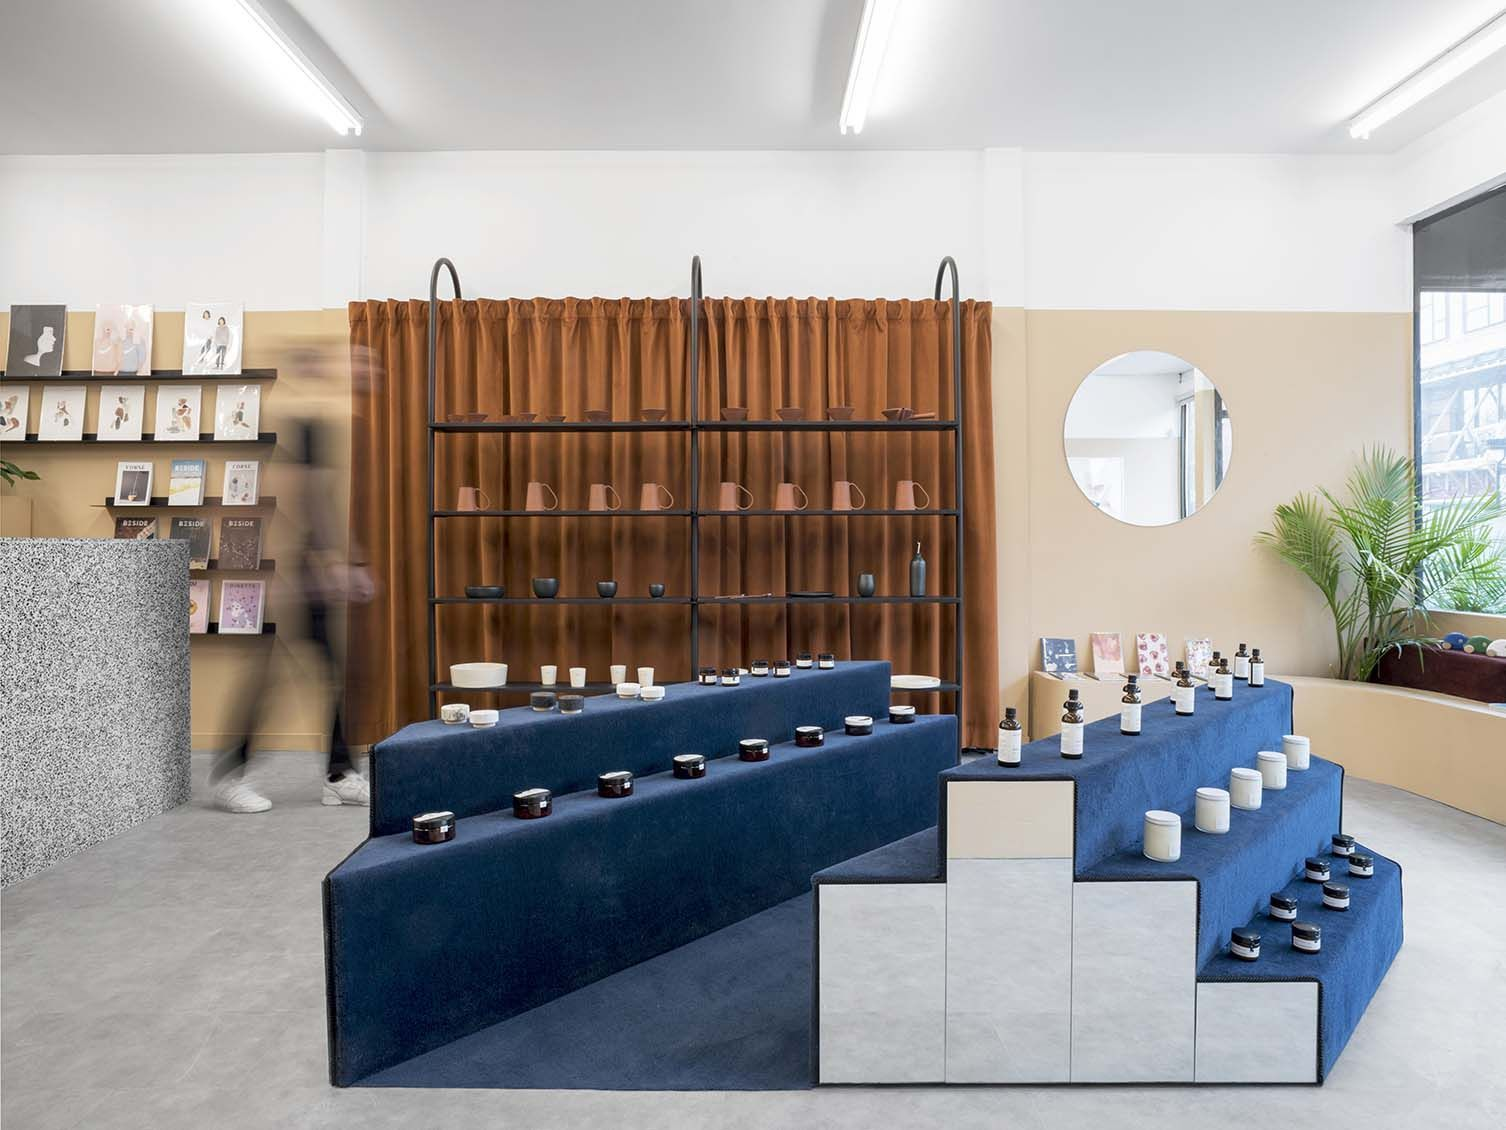 Synonymous with selling style, Montreal design store C'est Beau open their second outpost in the city, and unsurprisingly it's beautiful...